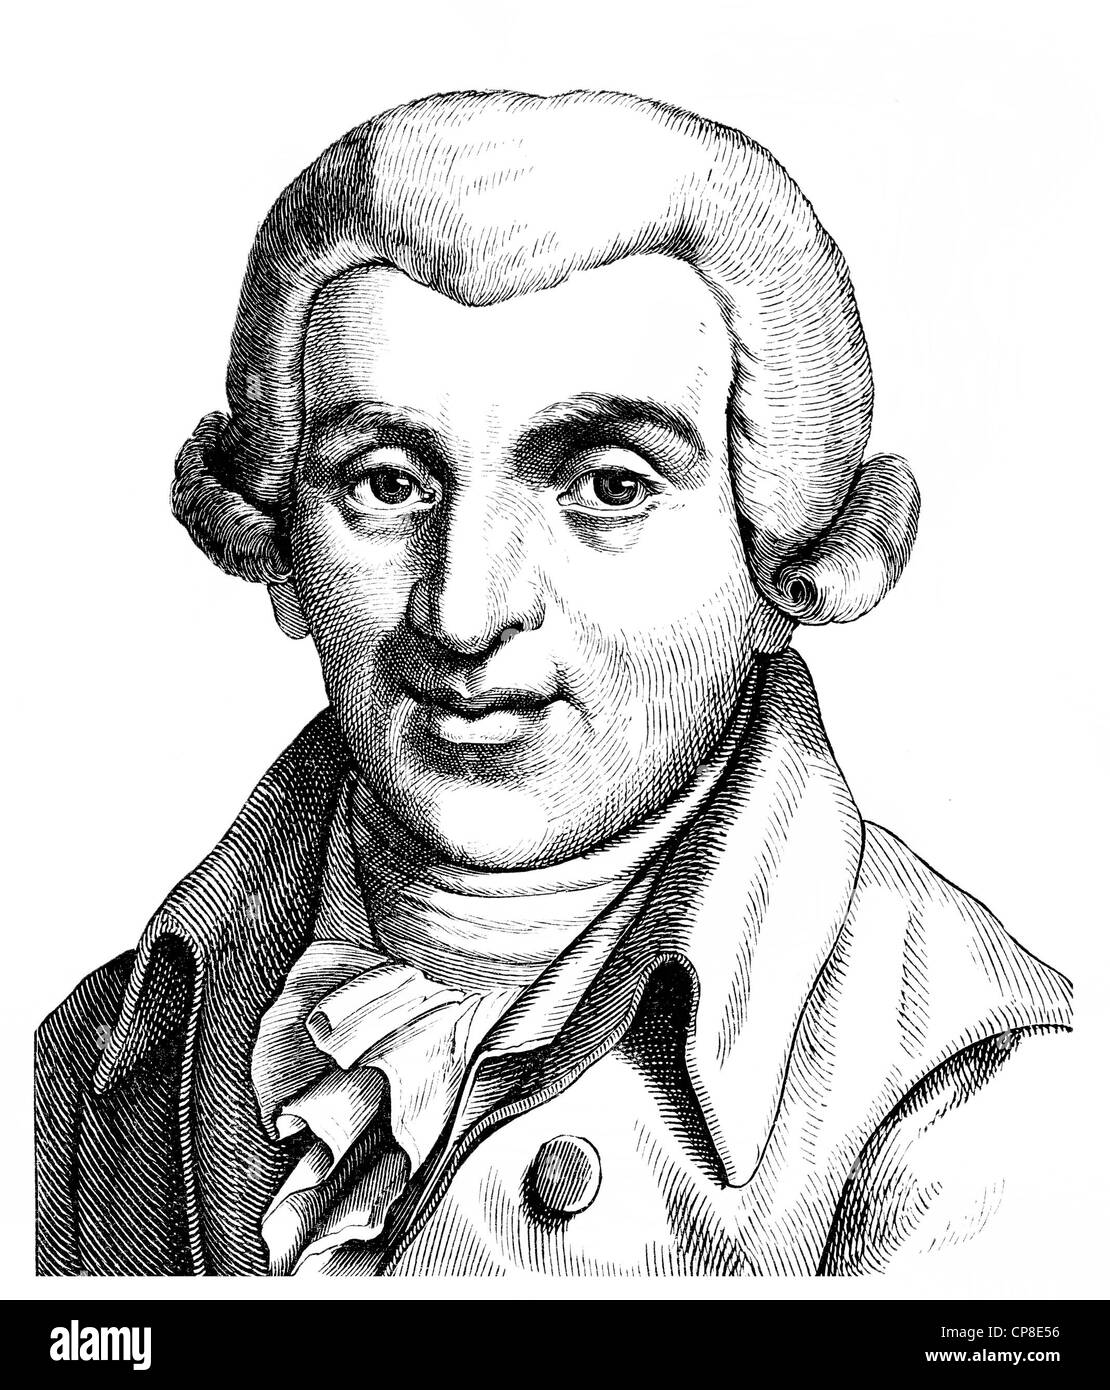 Johann Wilhelm Ludwig Gleim, 1719 - 1803, a German poet of the Enlightenment, Historische Zeichnung aus dem 19. - Stock Image